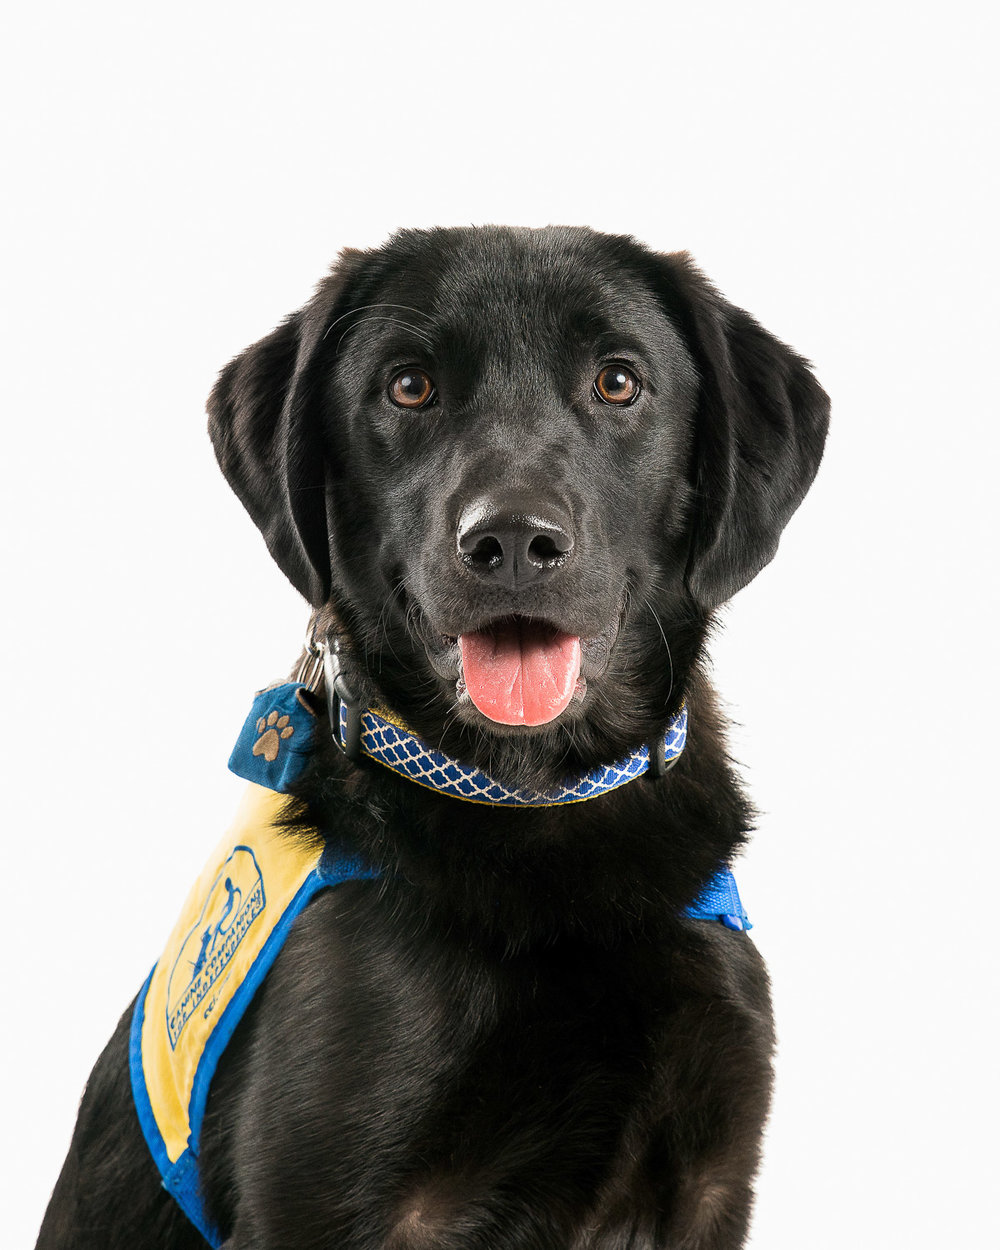 CCI Canine Companions for Independence - 002.jpg